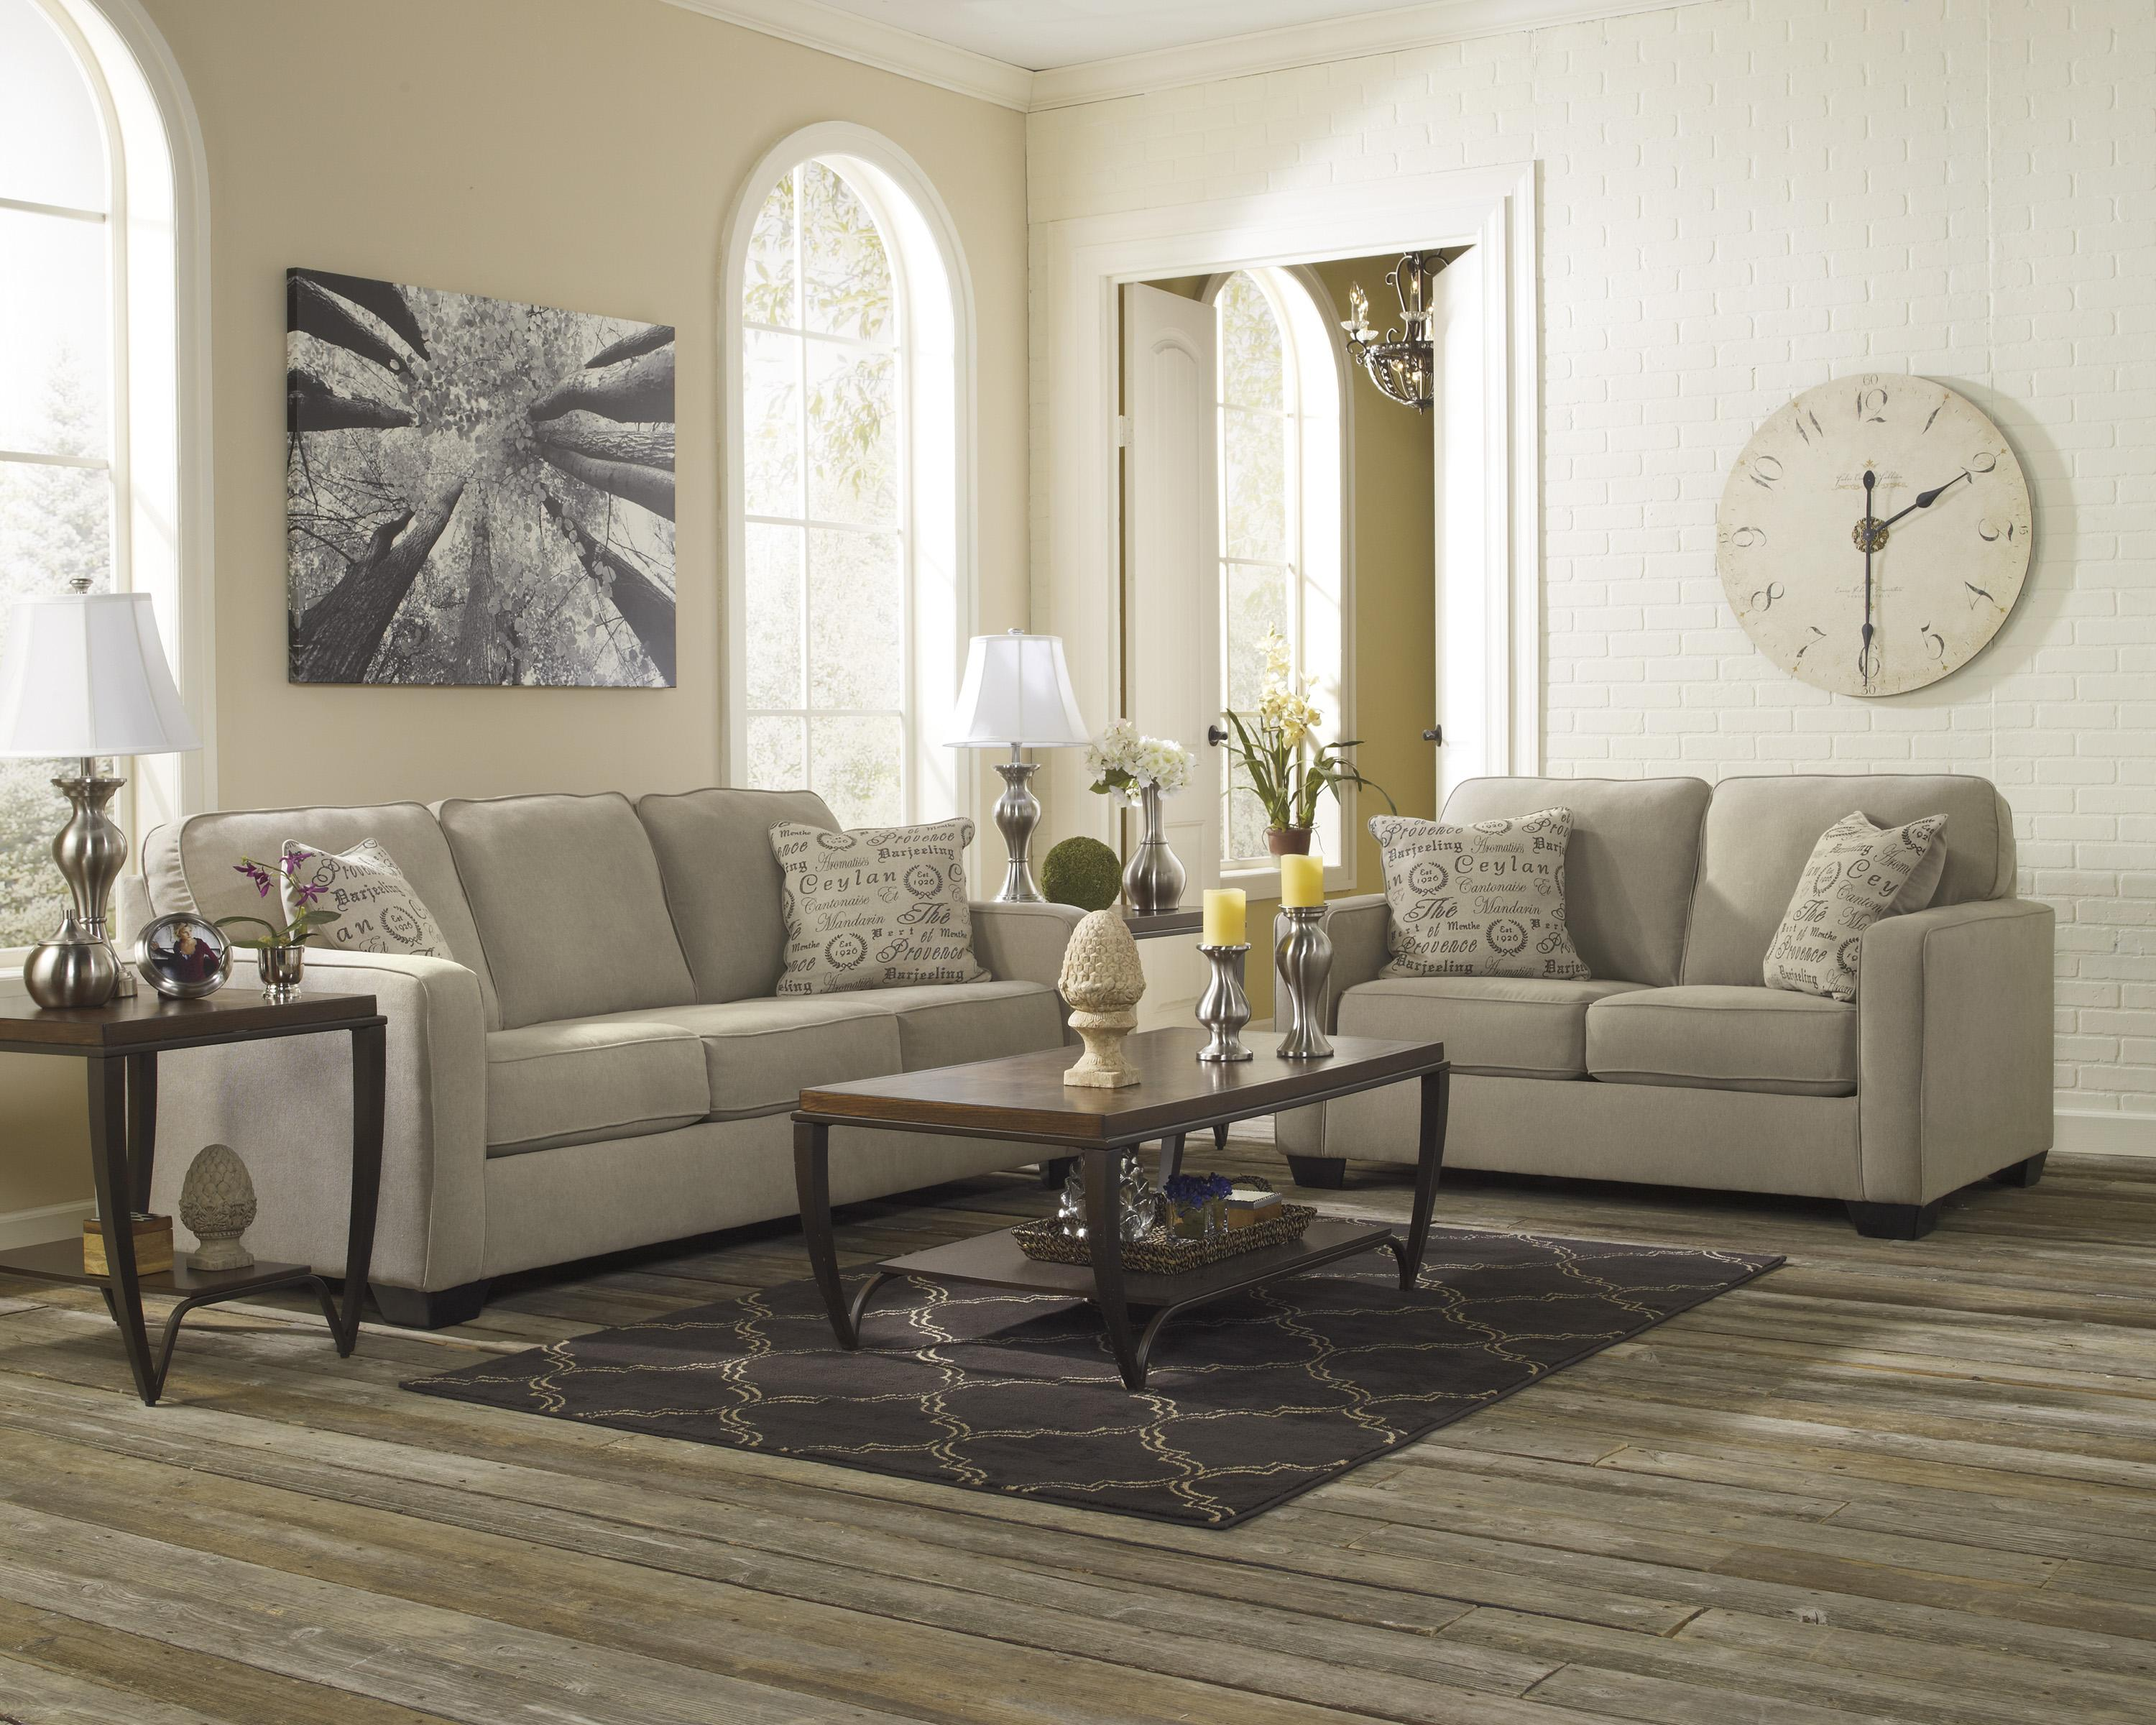 Alenya - Quartz Stationary Living Room Group at Van Hill Furniture